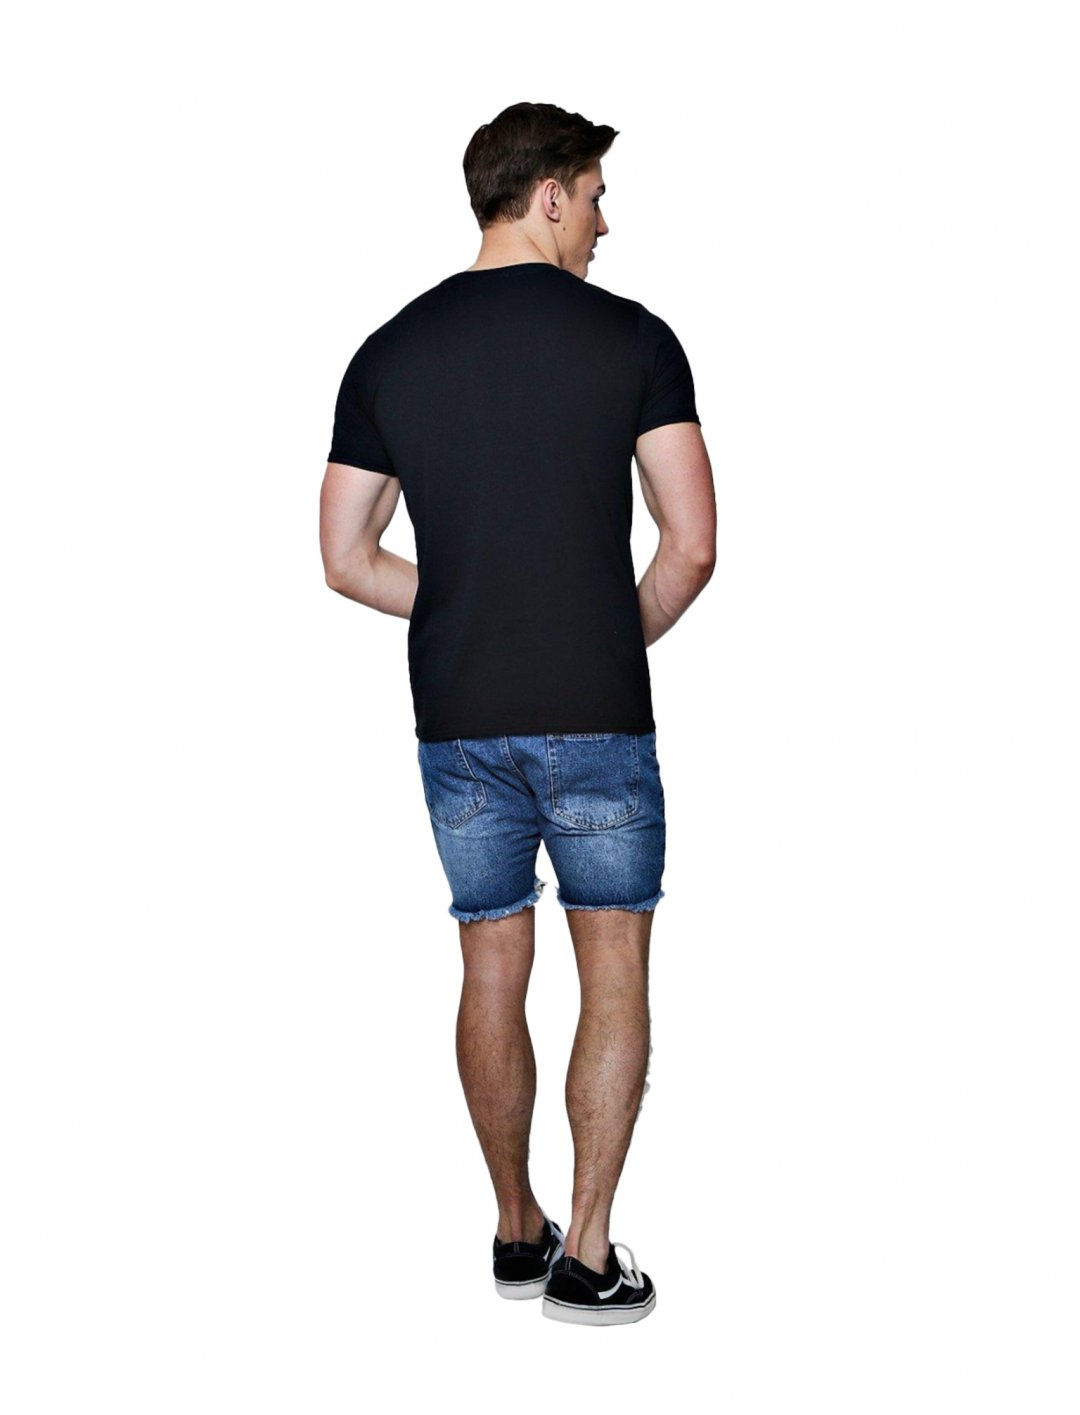 """BoohooMAN NY T-Shirt {""""id"""":5,""""product_section_id"""":1,""""name"""":""""Clothing"""",""""order"""":5} BoohooMAN"""